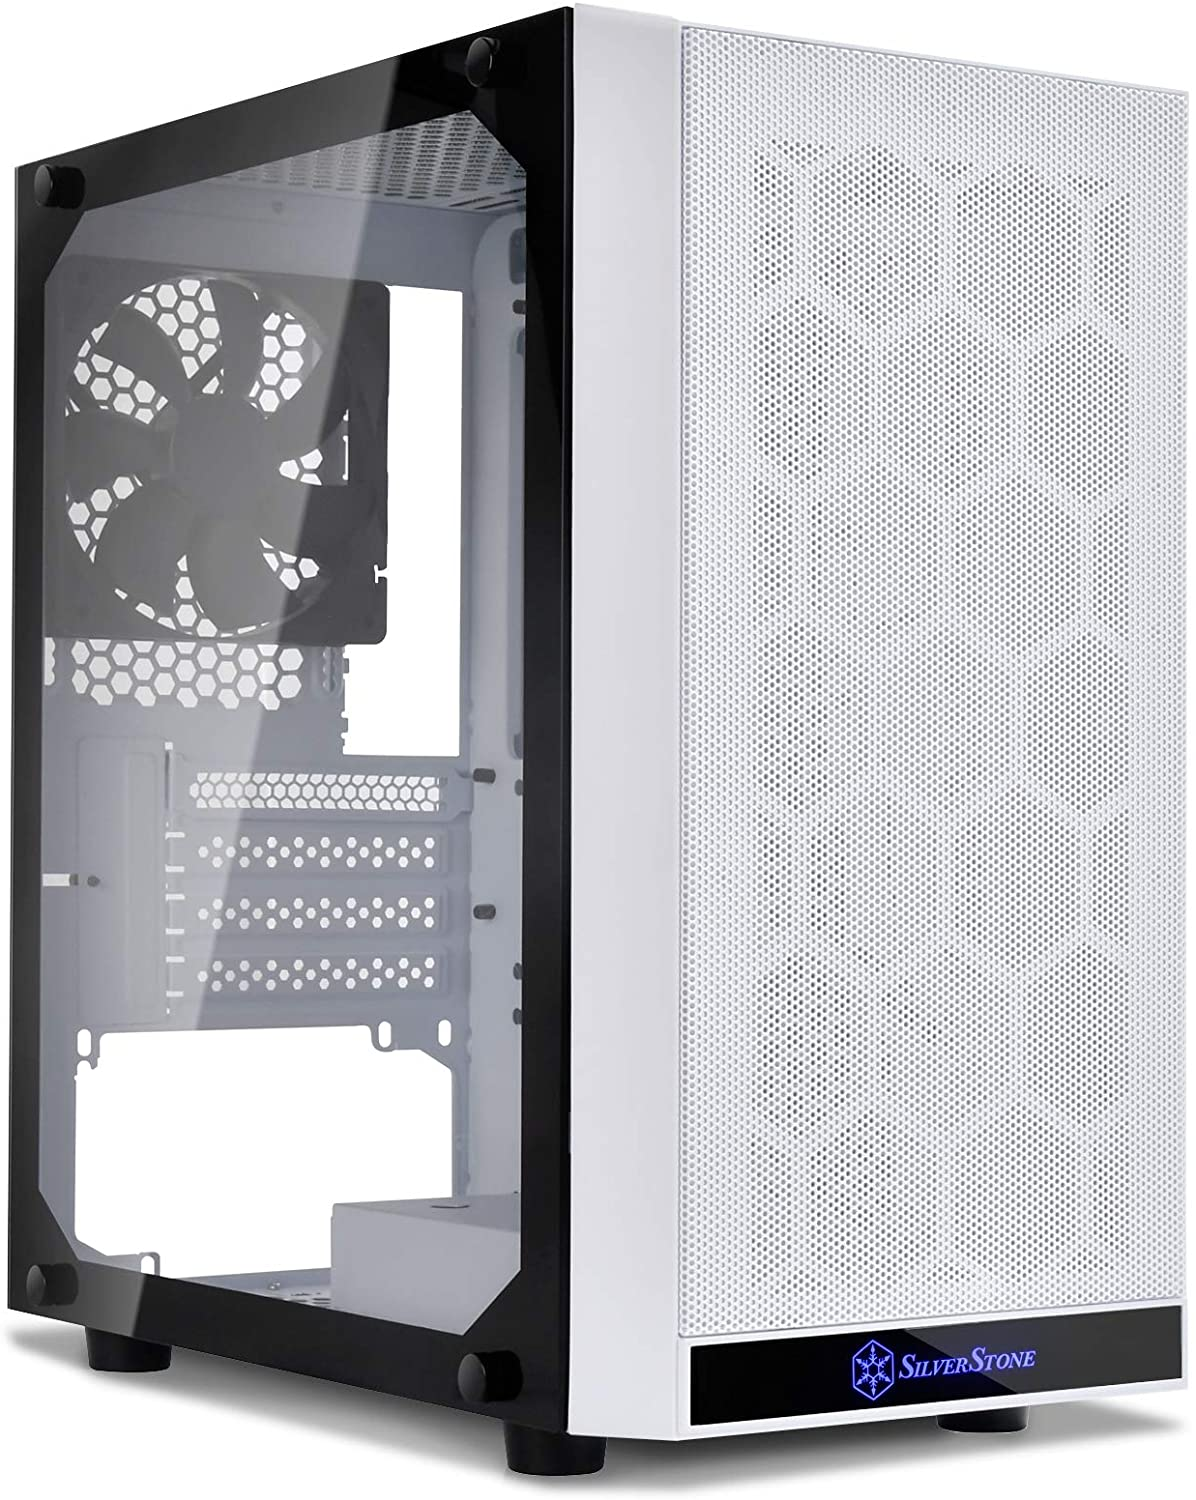 Silverstone SST-PS15W-G (White + Tempered Glass Window) Micro-ATX, Mini-DTX, Mesh Front Panel, Steel Body, Tempered Glass Side Panel